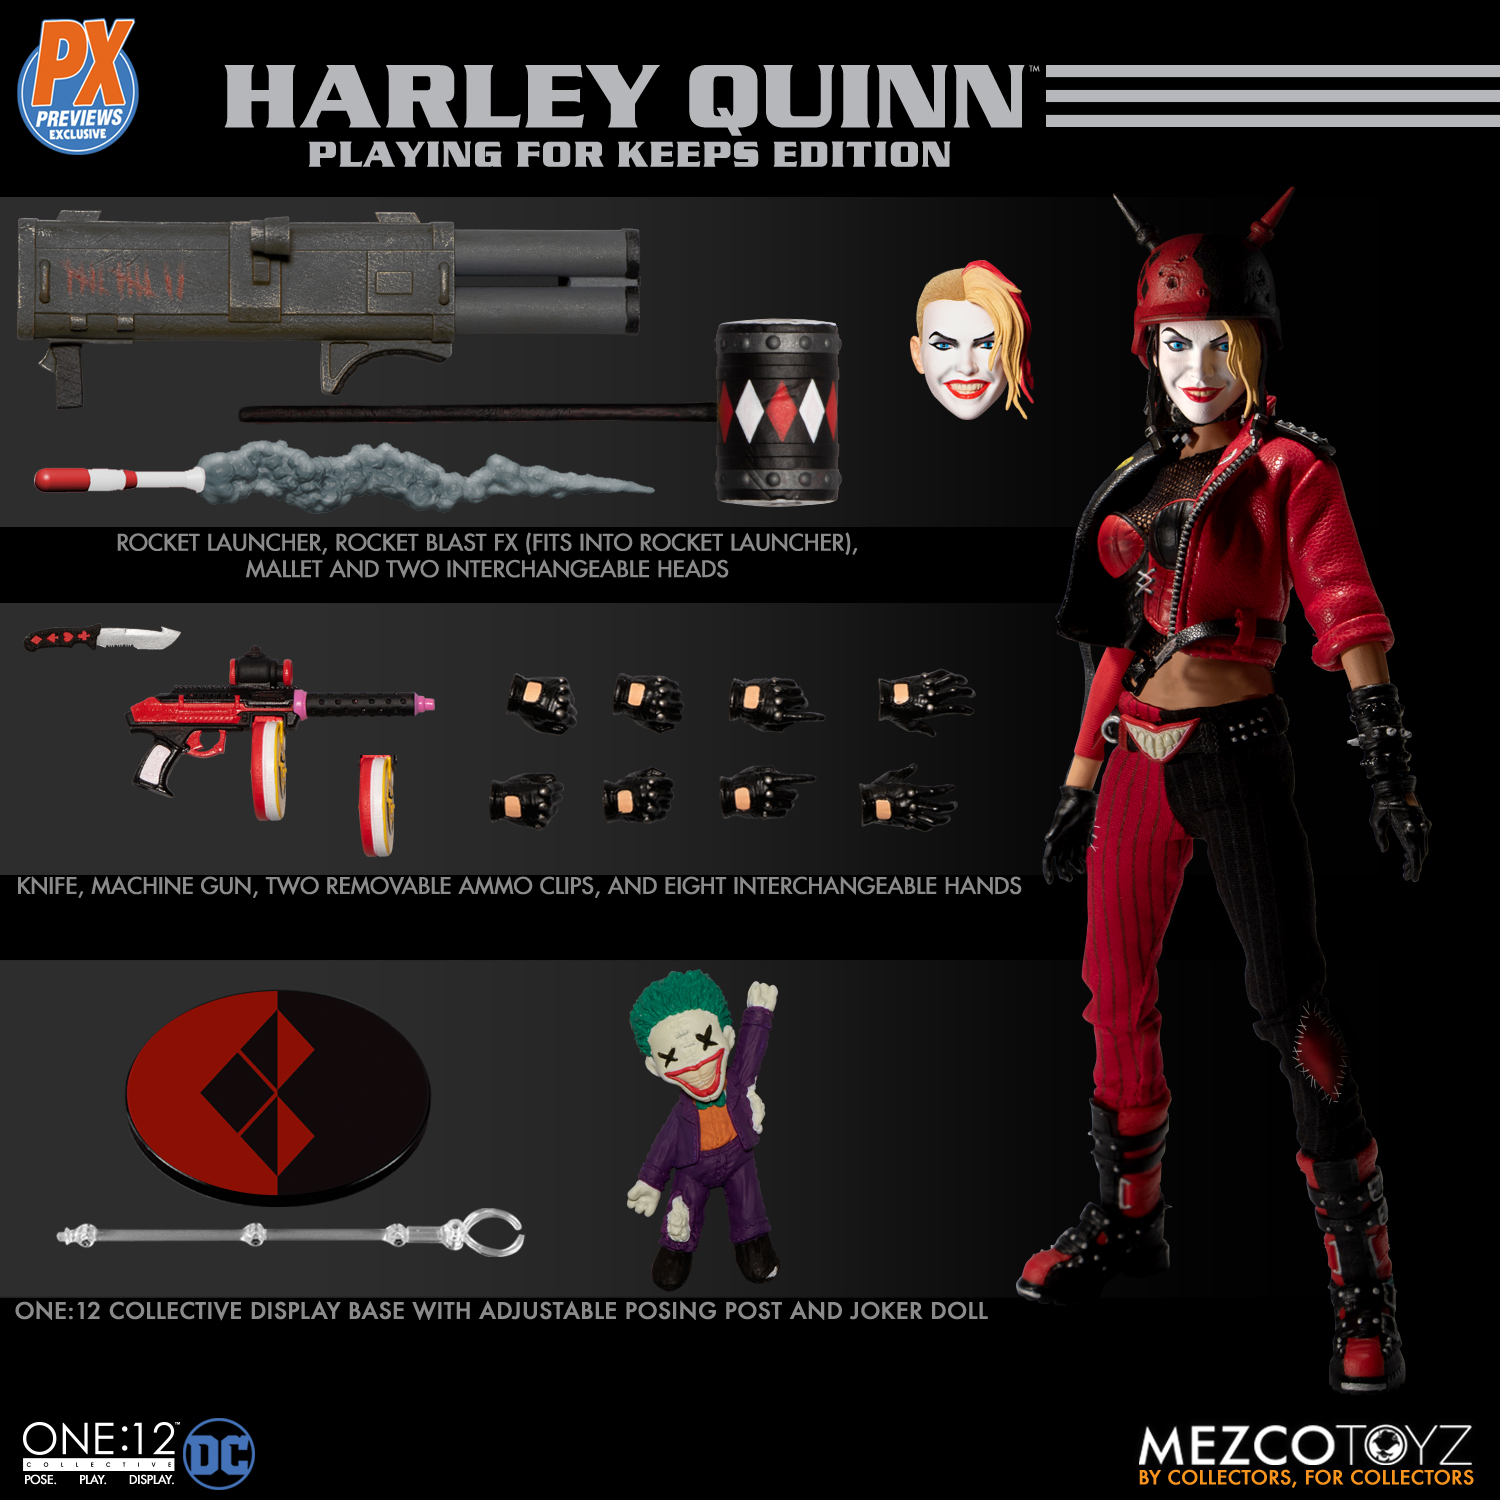 ONE-12 COLLECTIVE DC HARLEY QUINN PLAYING FOR KEEPS ED PX AF